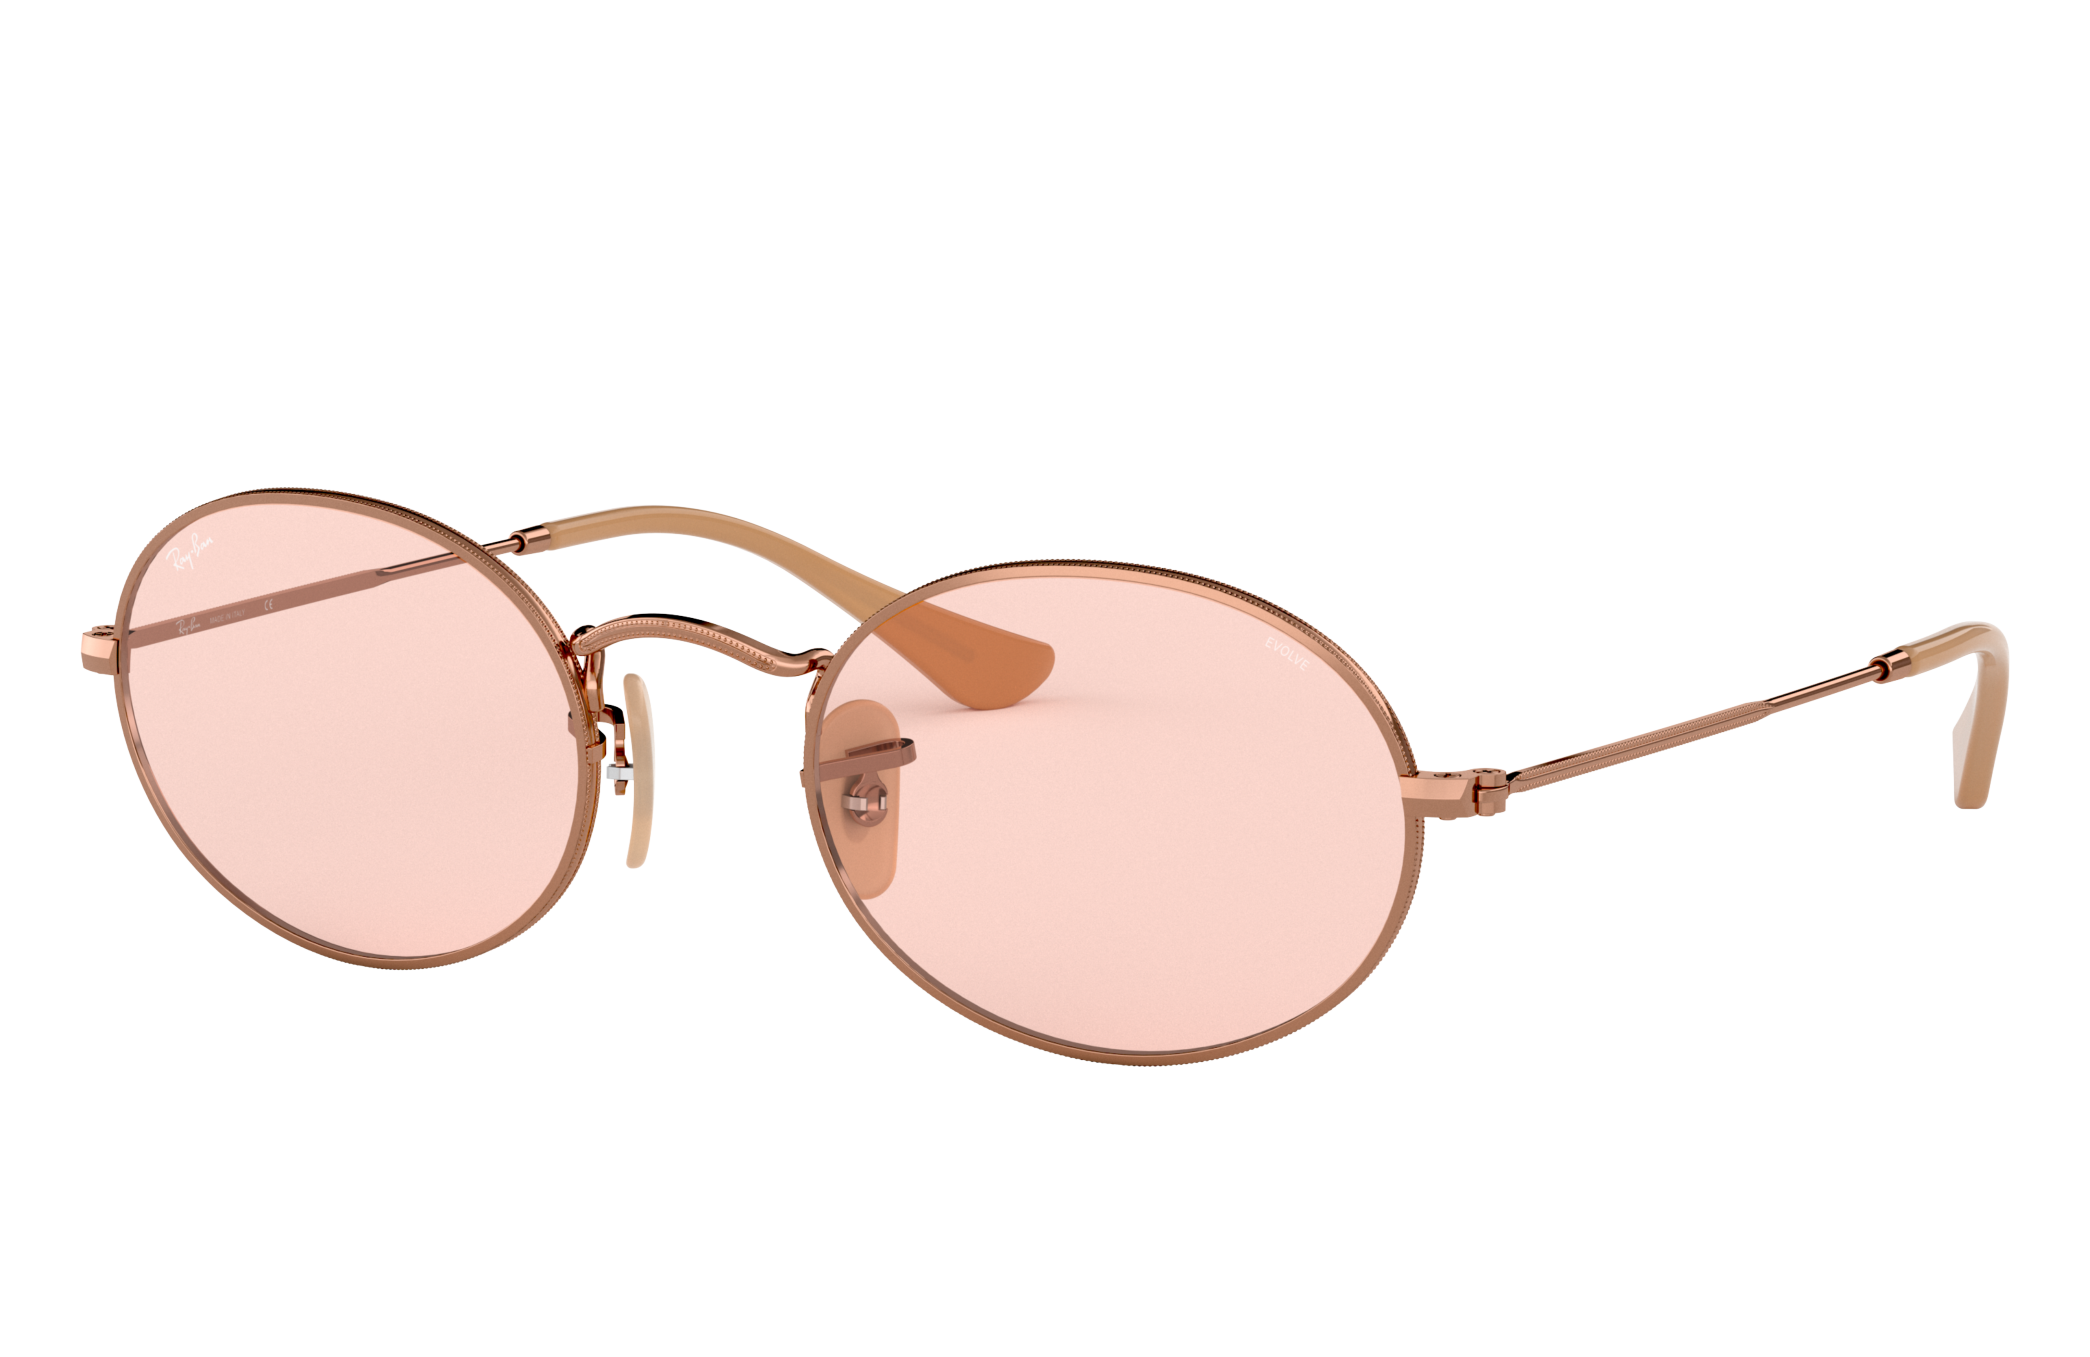 Ray-Ban Oval Washed Evolve Bronze-Copper, Pink Lenses - RB3547N